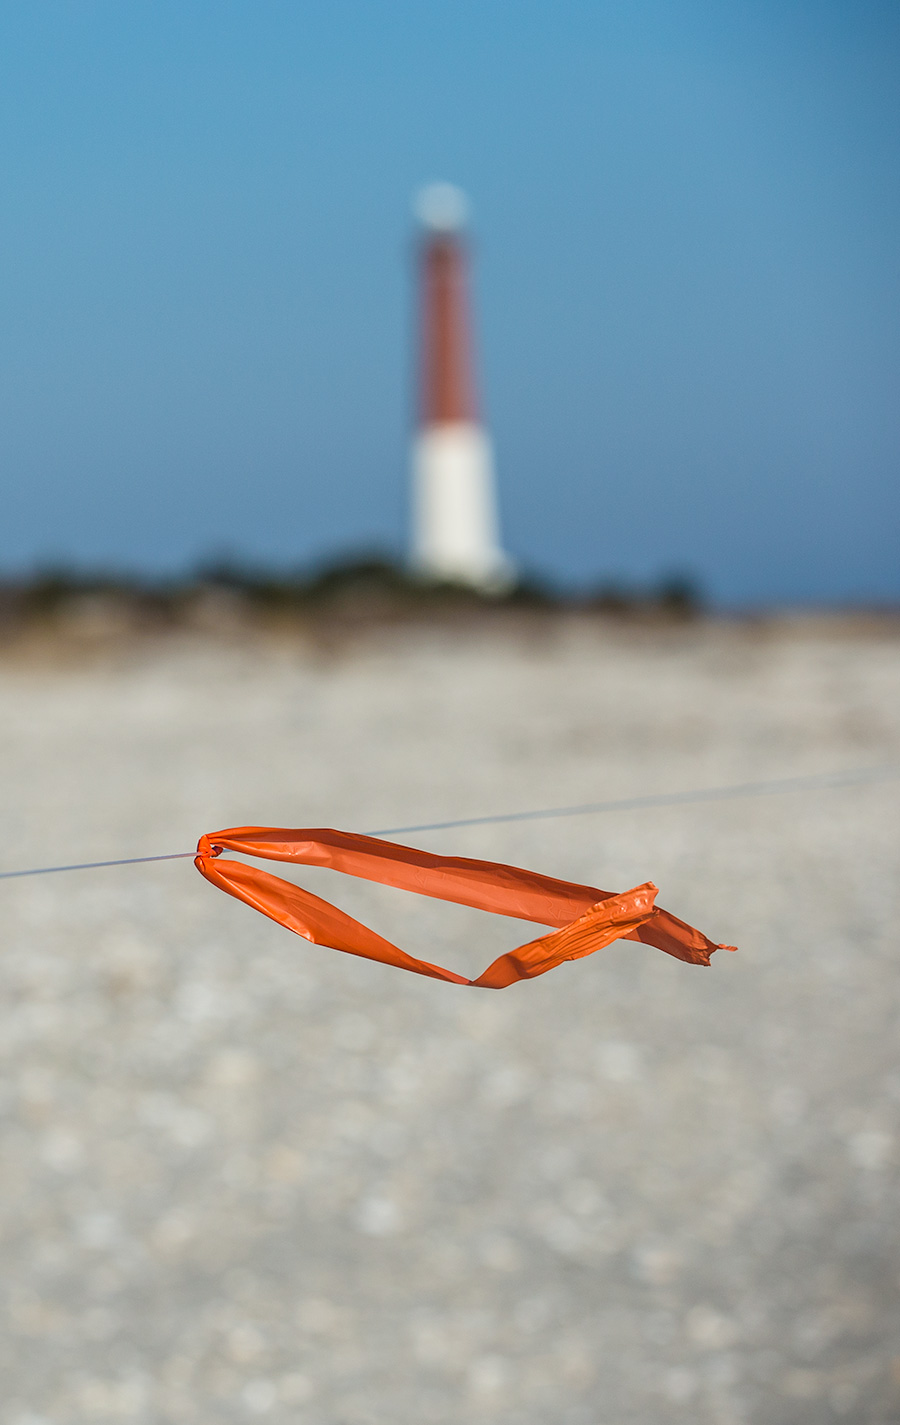 The Orange Flags Of The Wild-Lifeguards